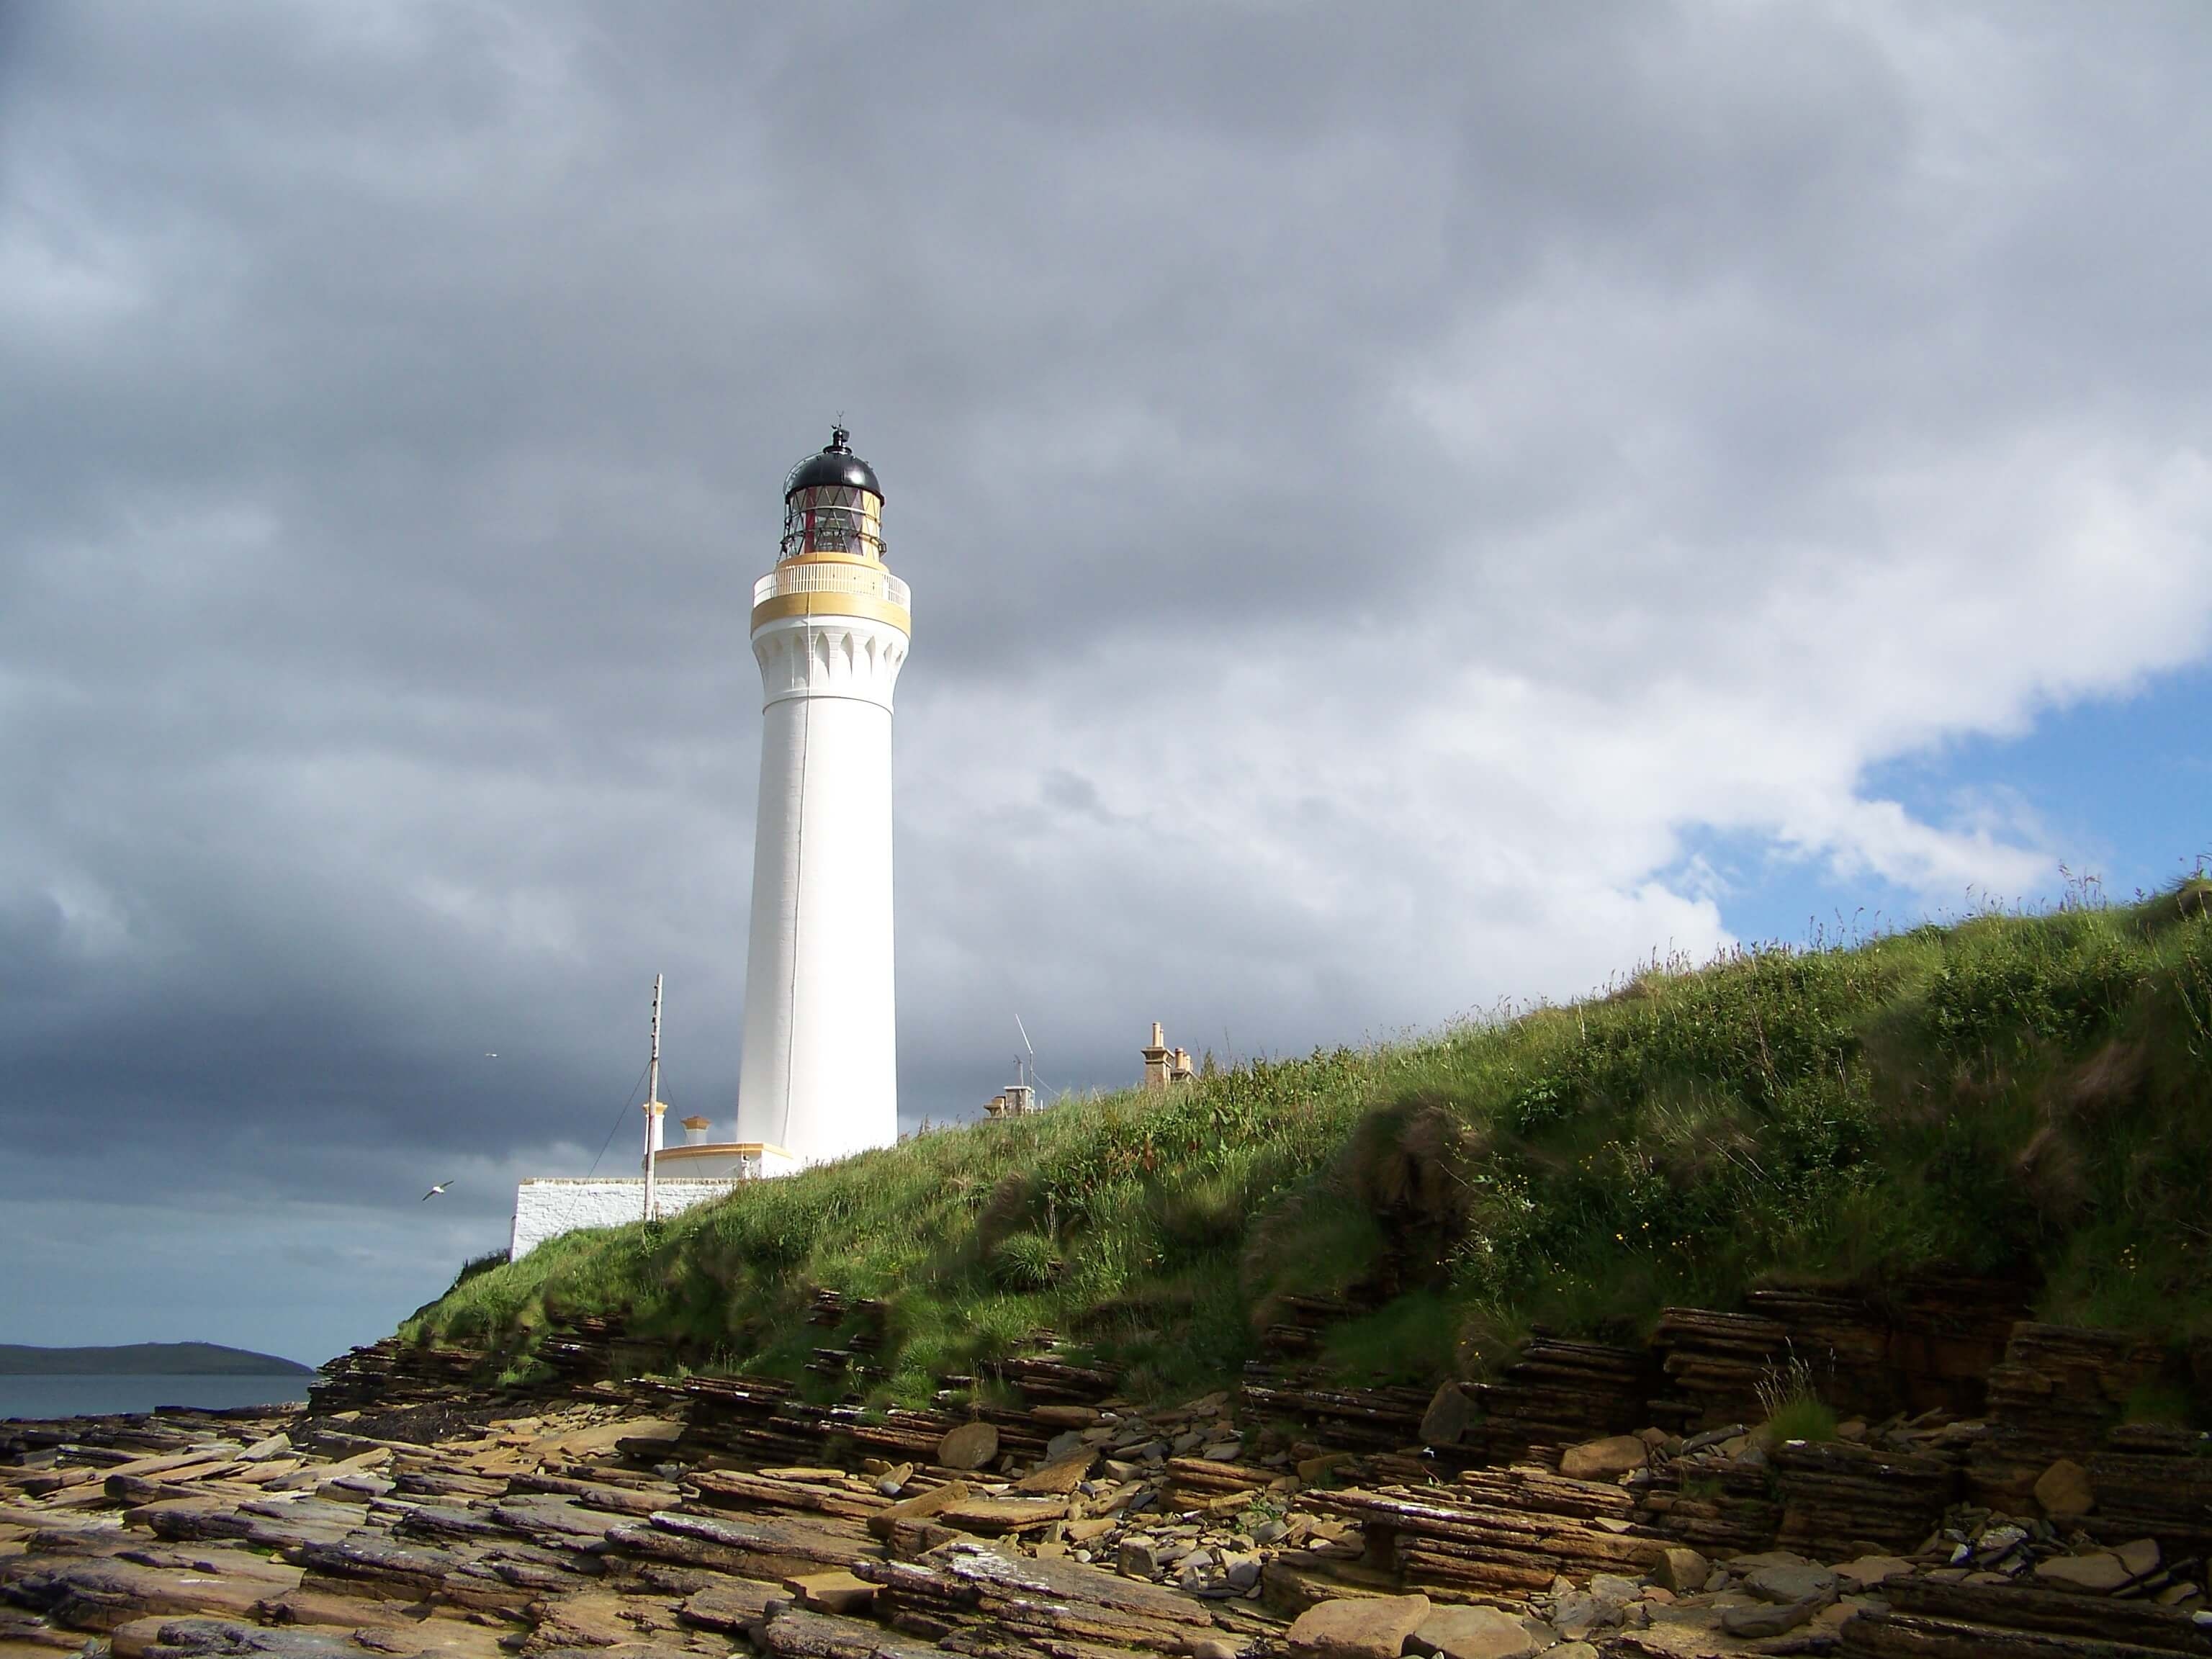 Lighthouse on the island of Graemsay.